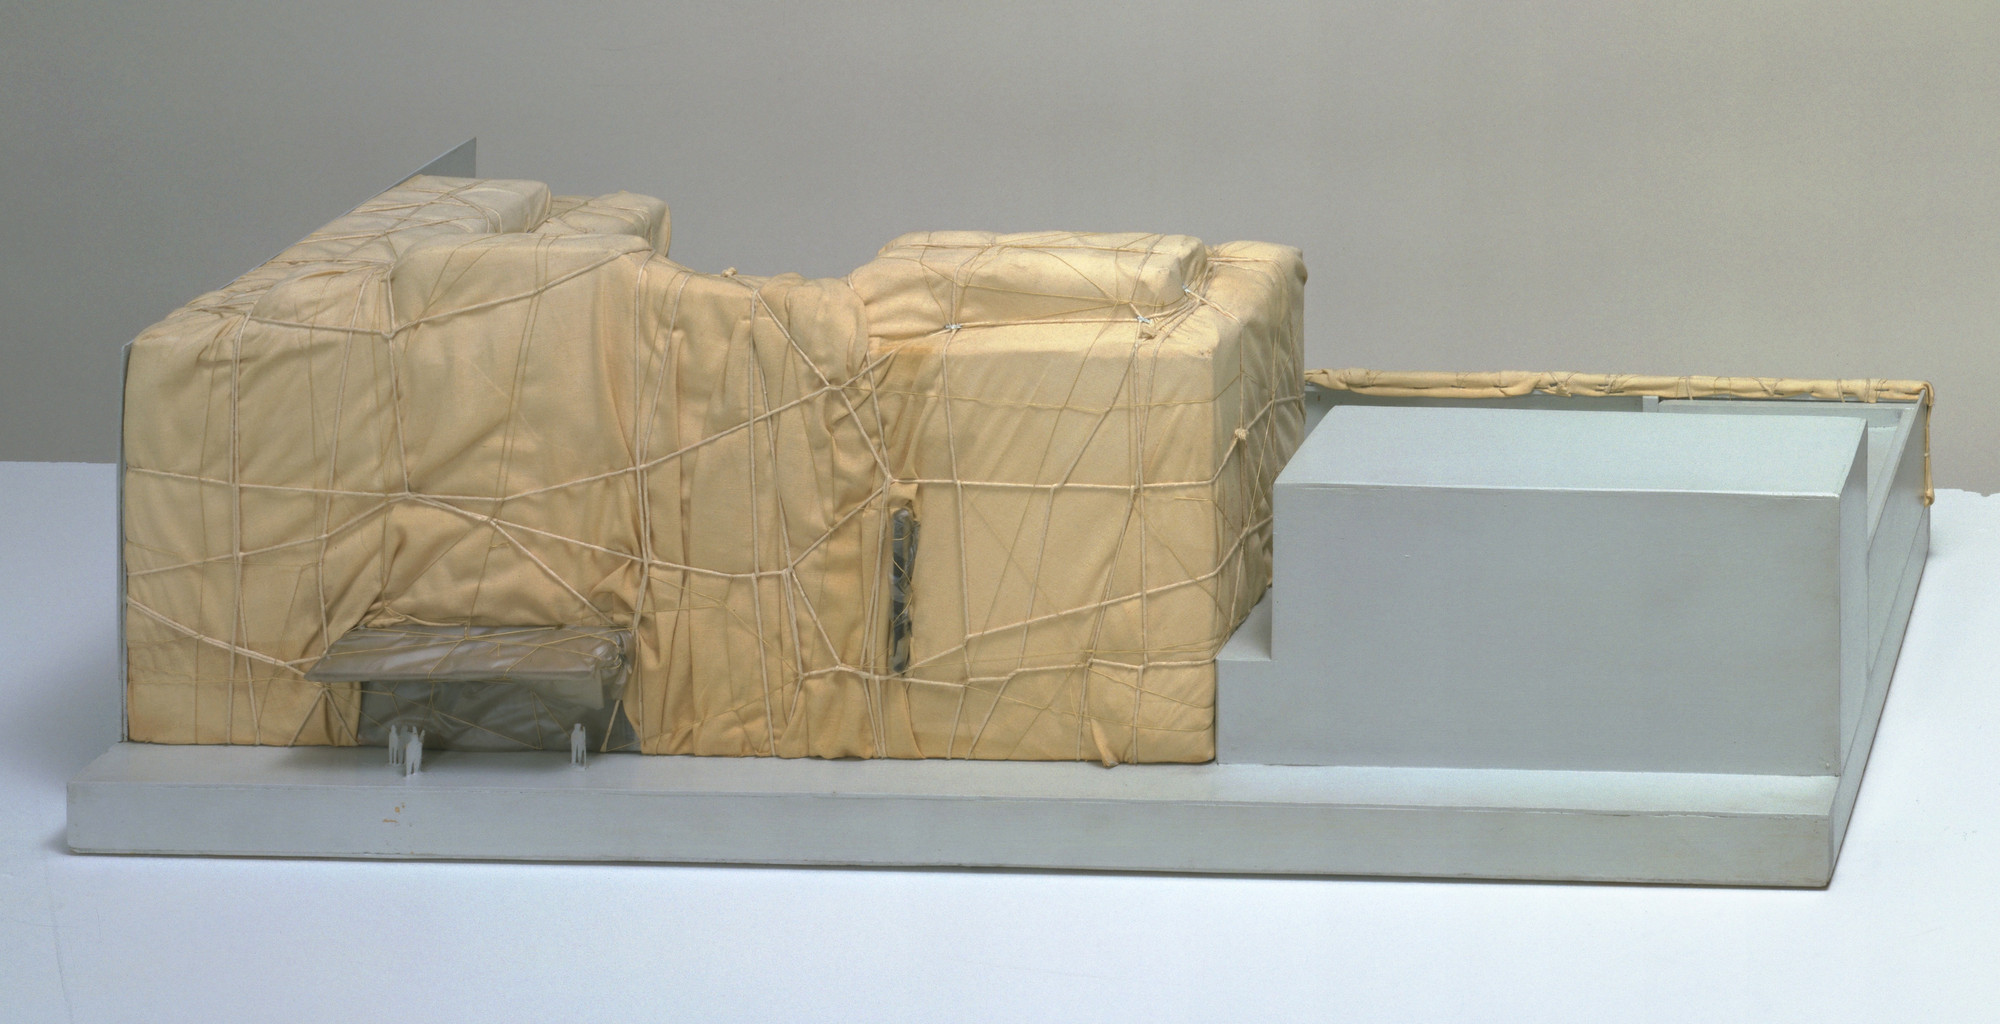 Christo. The Museum of Modern Art Packaged. 1968